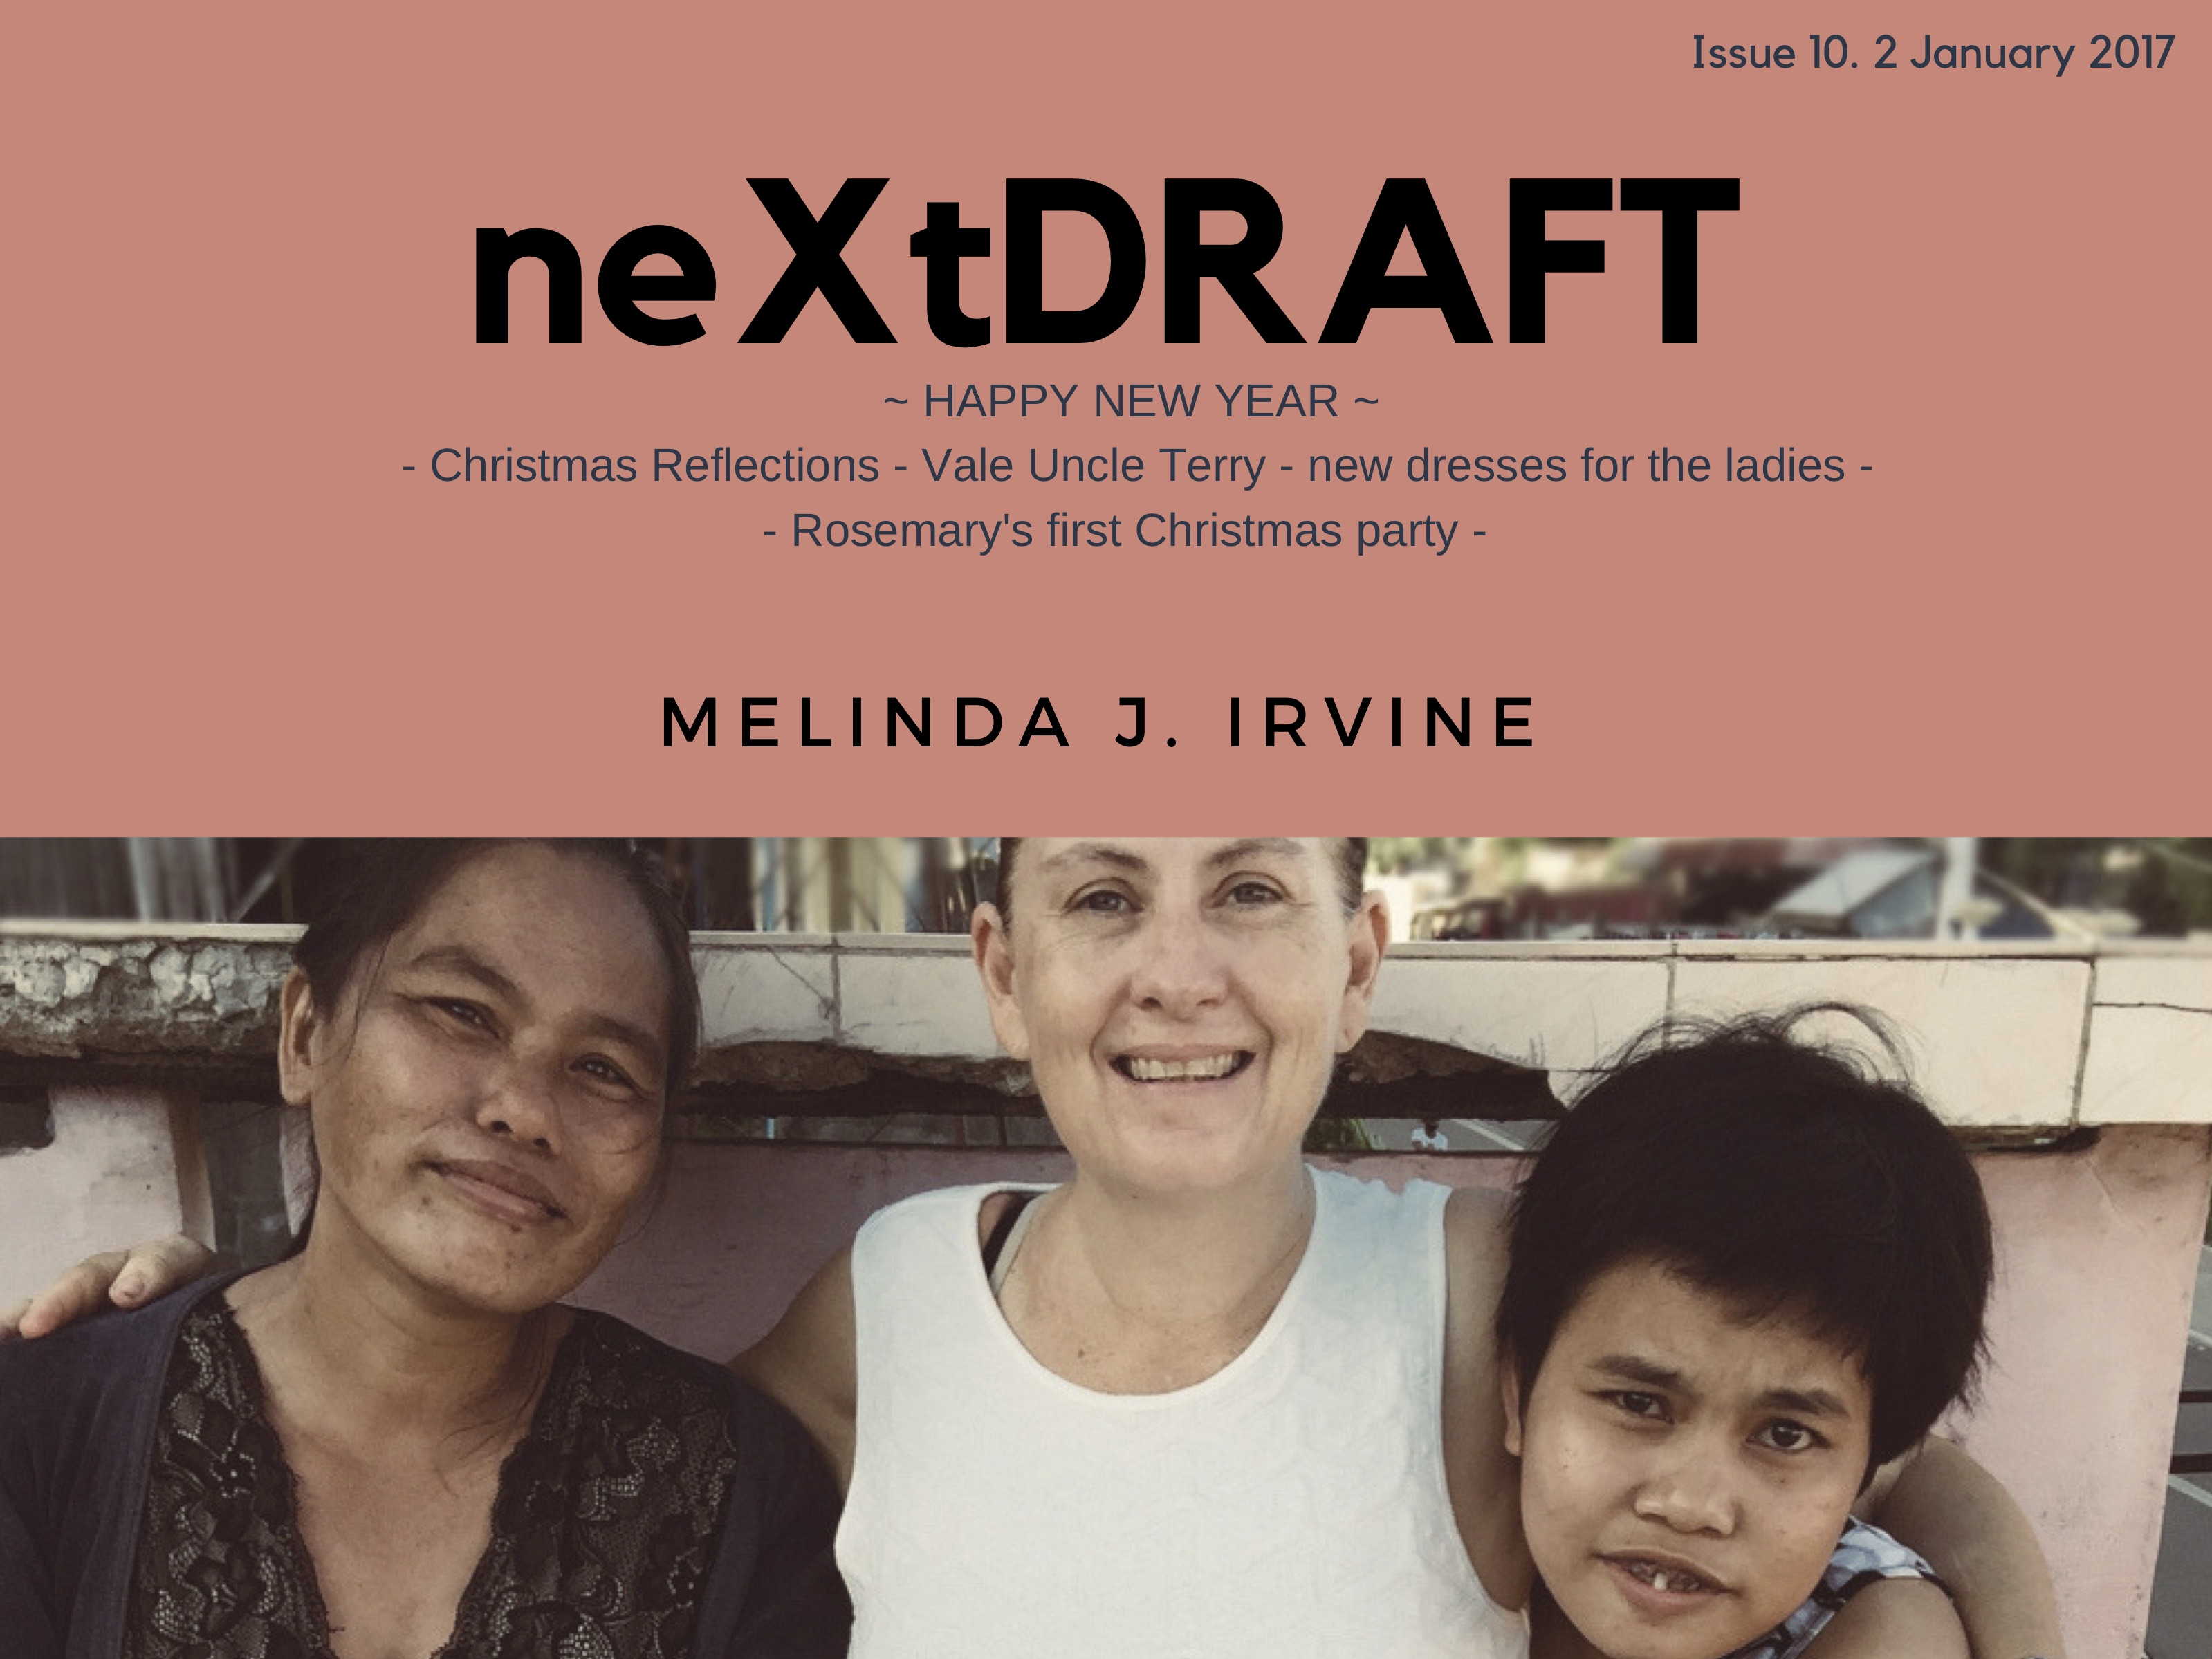 neXtDRAFT an eZine by Melinda J. Irvine Issue 10.